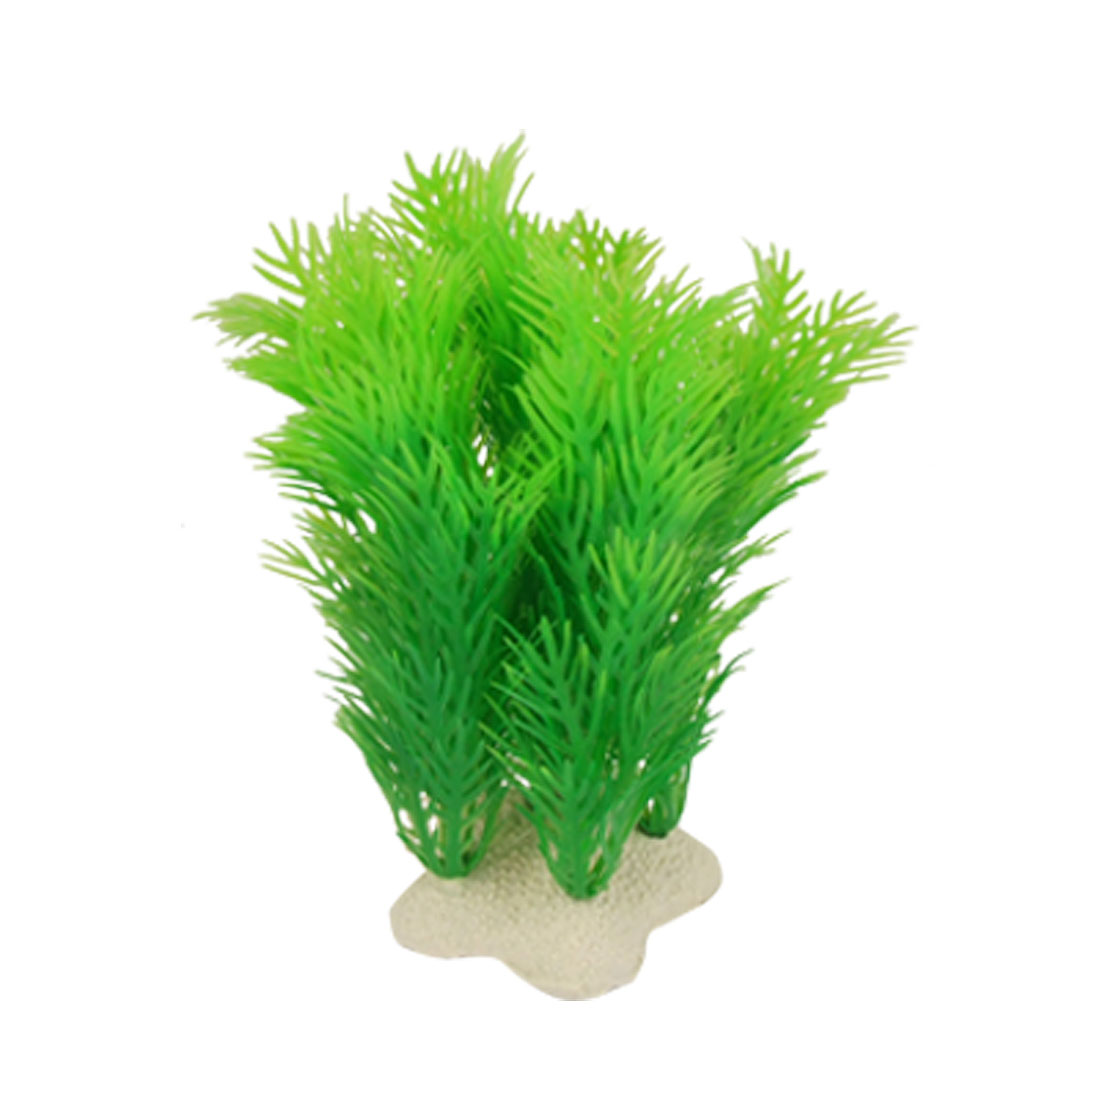 Five Pointed Star Base Green Plastic Plant Decor for Aquarium